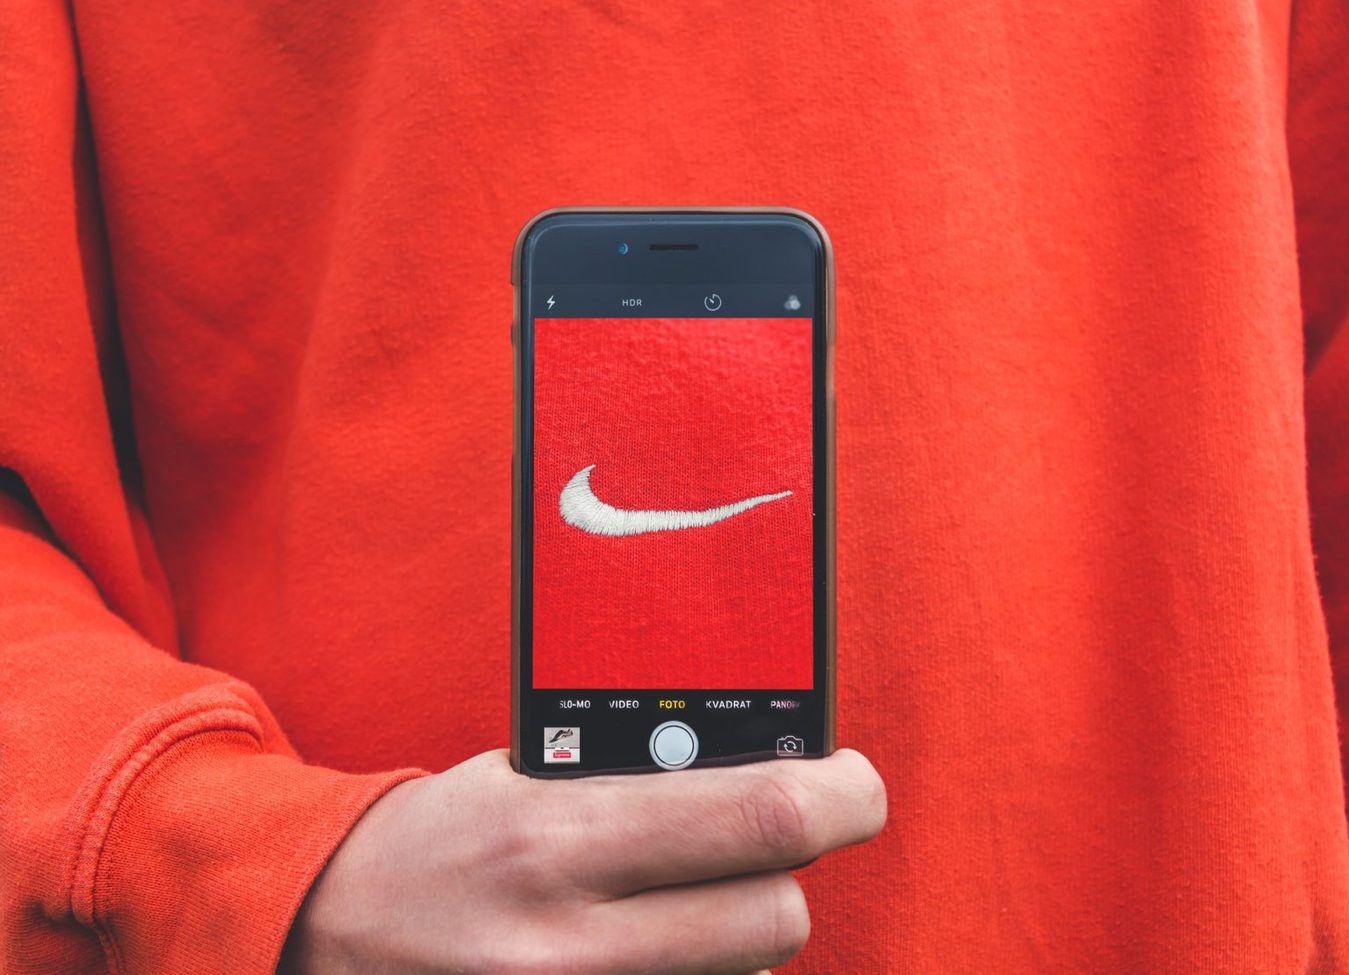 Nike logo on a phone screen against a red shirt